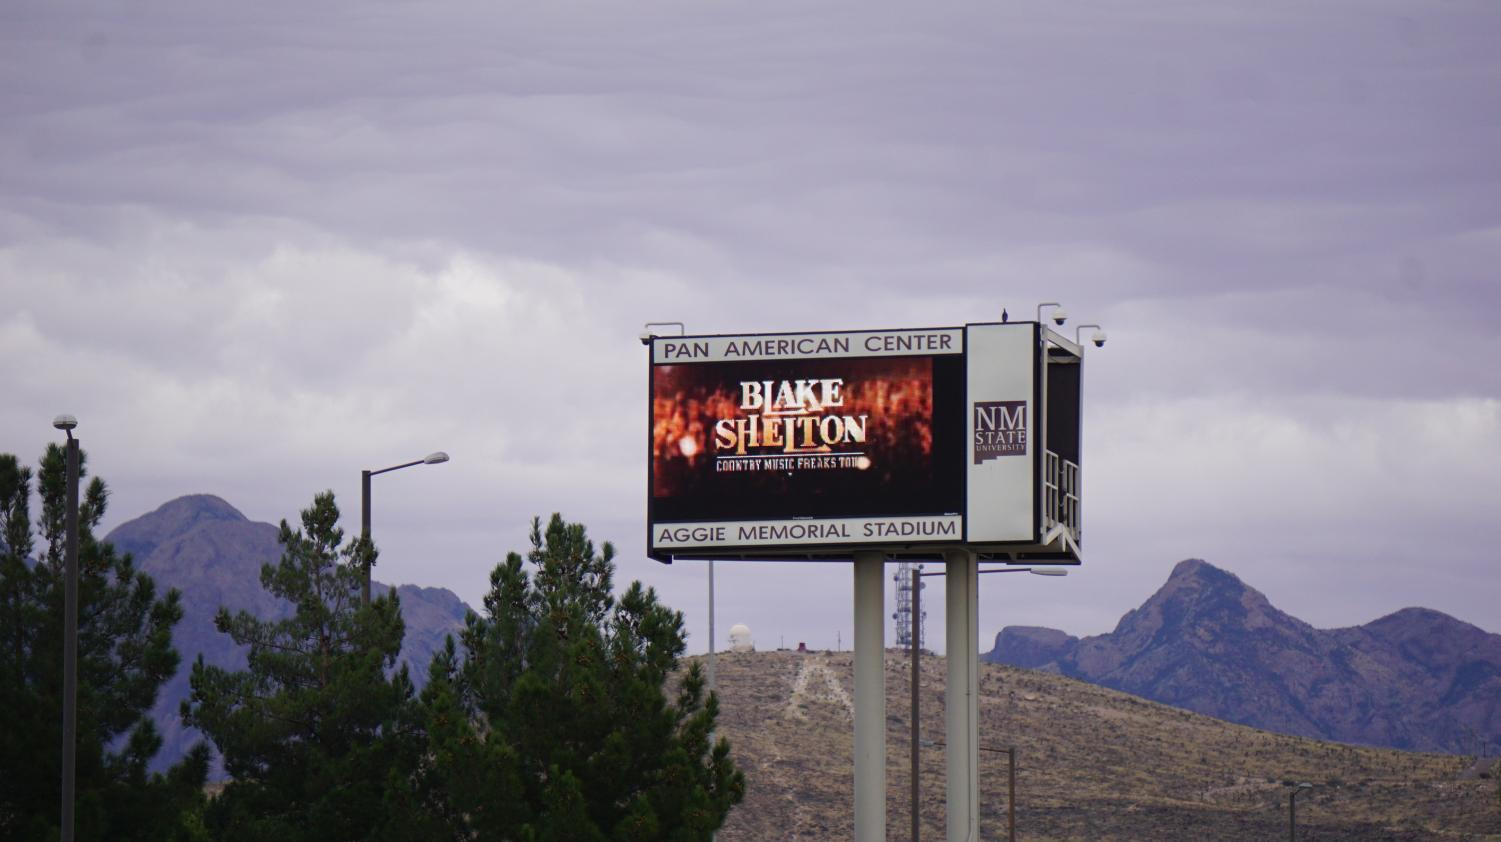 Pan American Center advertising the Blake Shelton concert that will be coming to NMSU in early 2018.